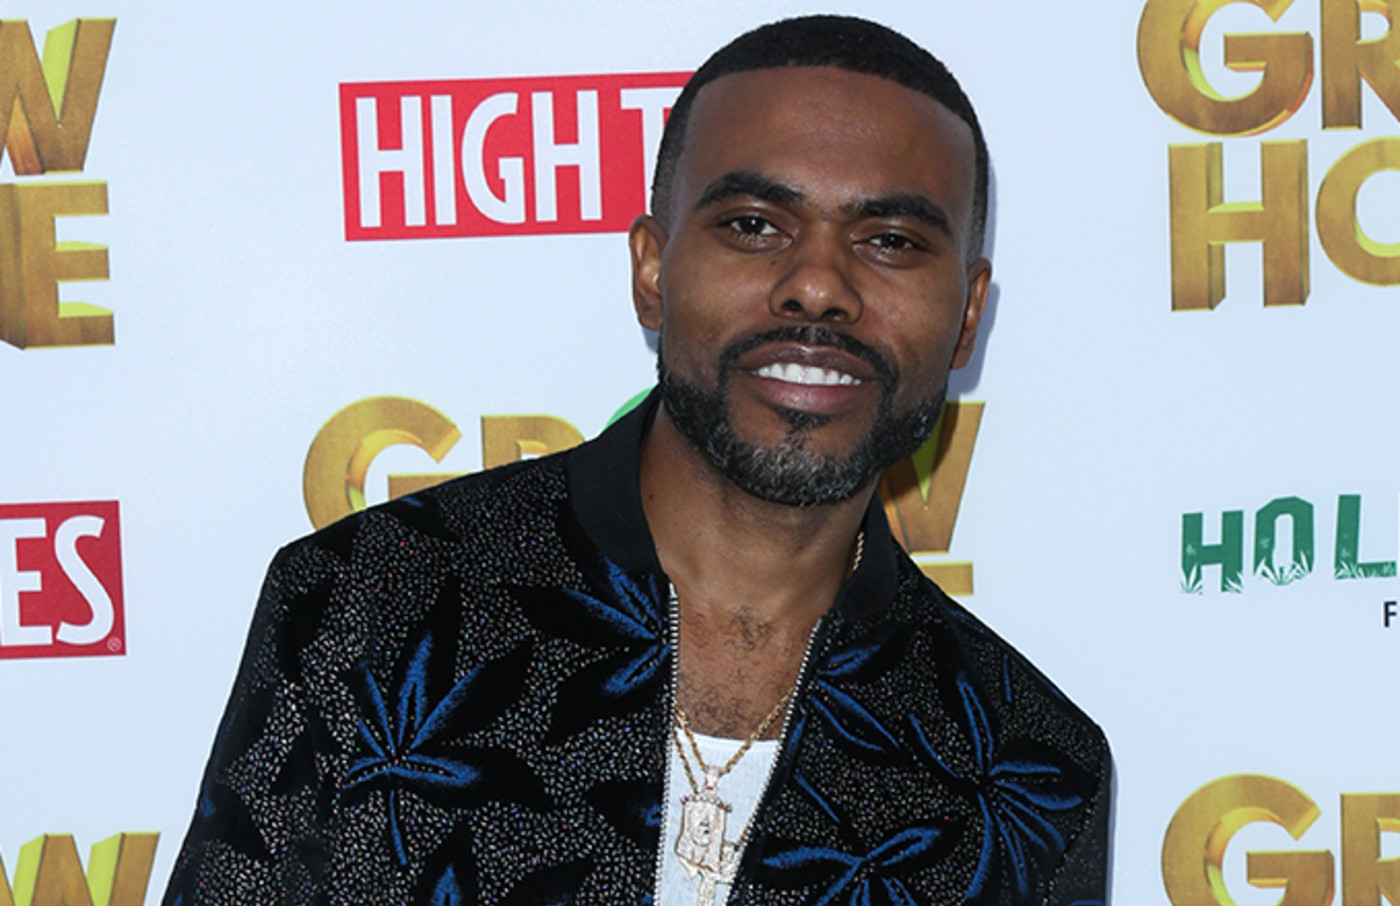 If a man is a billionaire, having more than one woman isn?t being greedy - Comedian Lil Duval